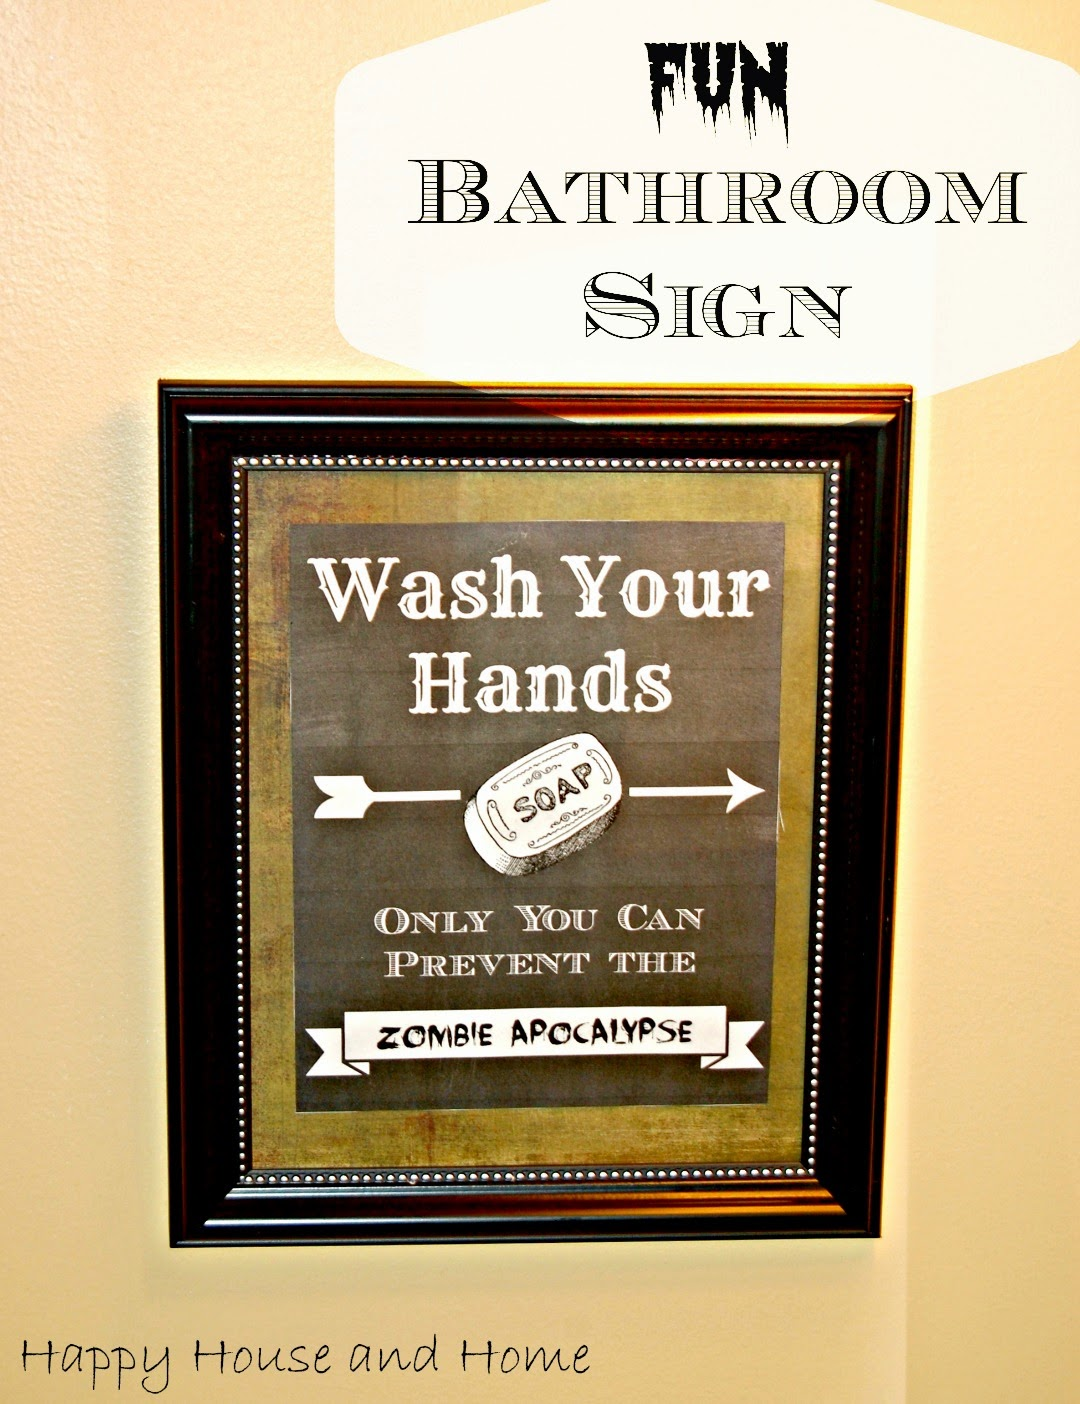 Happy House And Home Fun Bathroom Sign Wash Your Hands